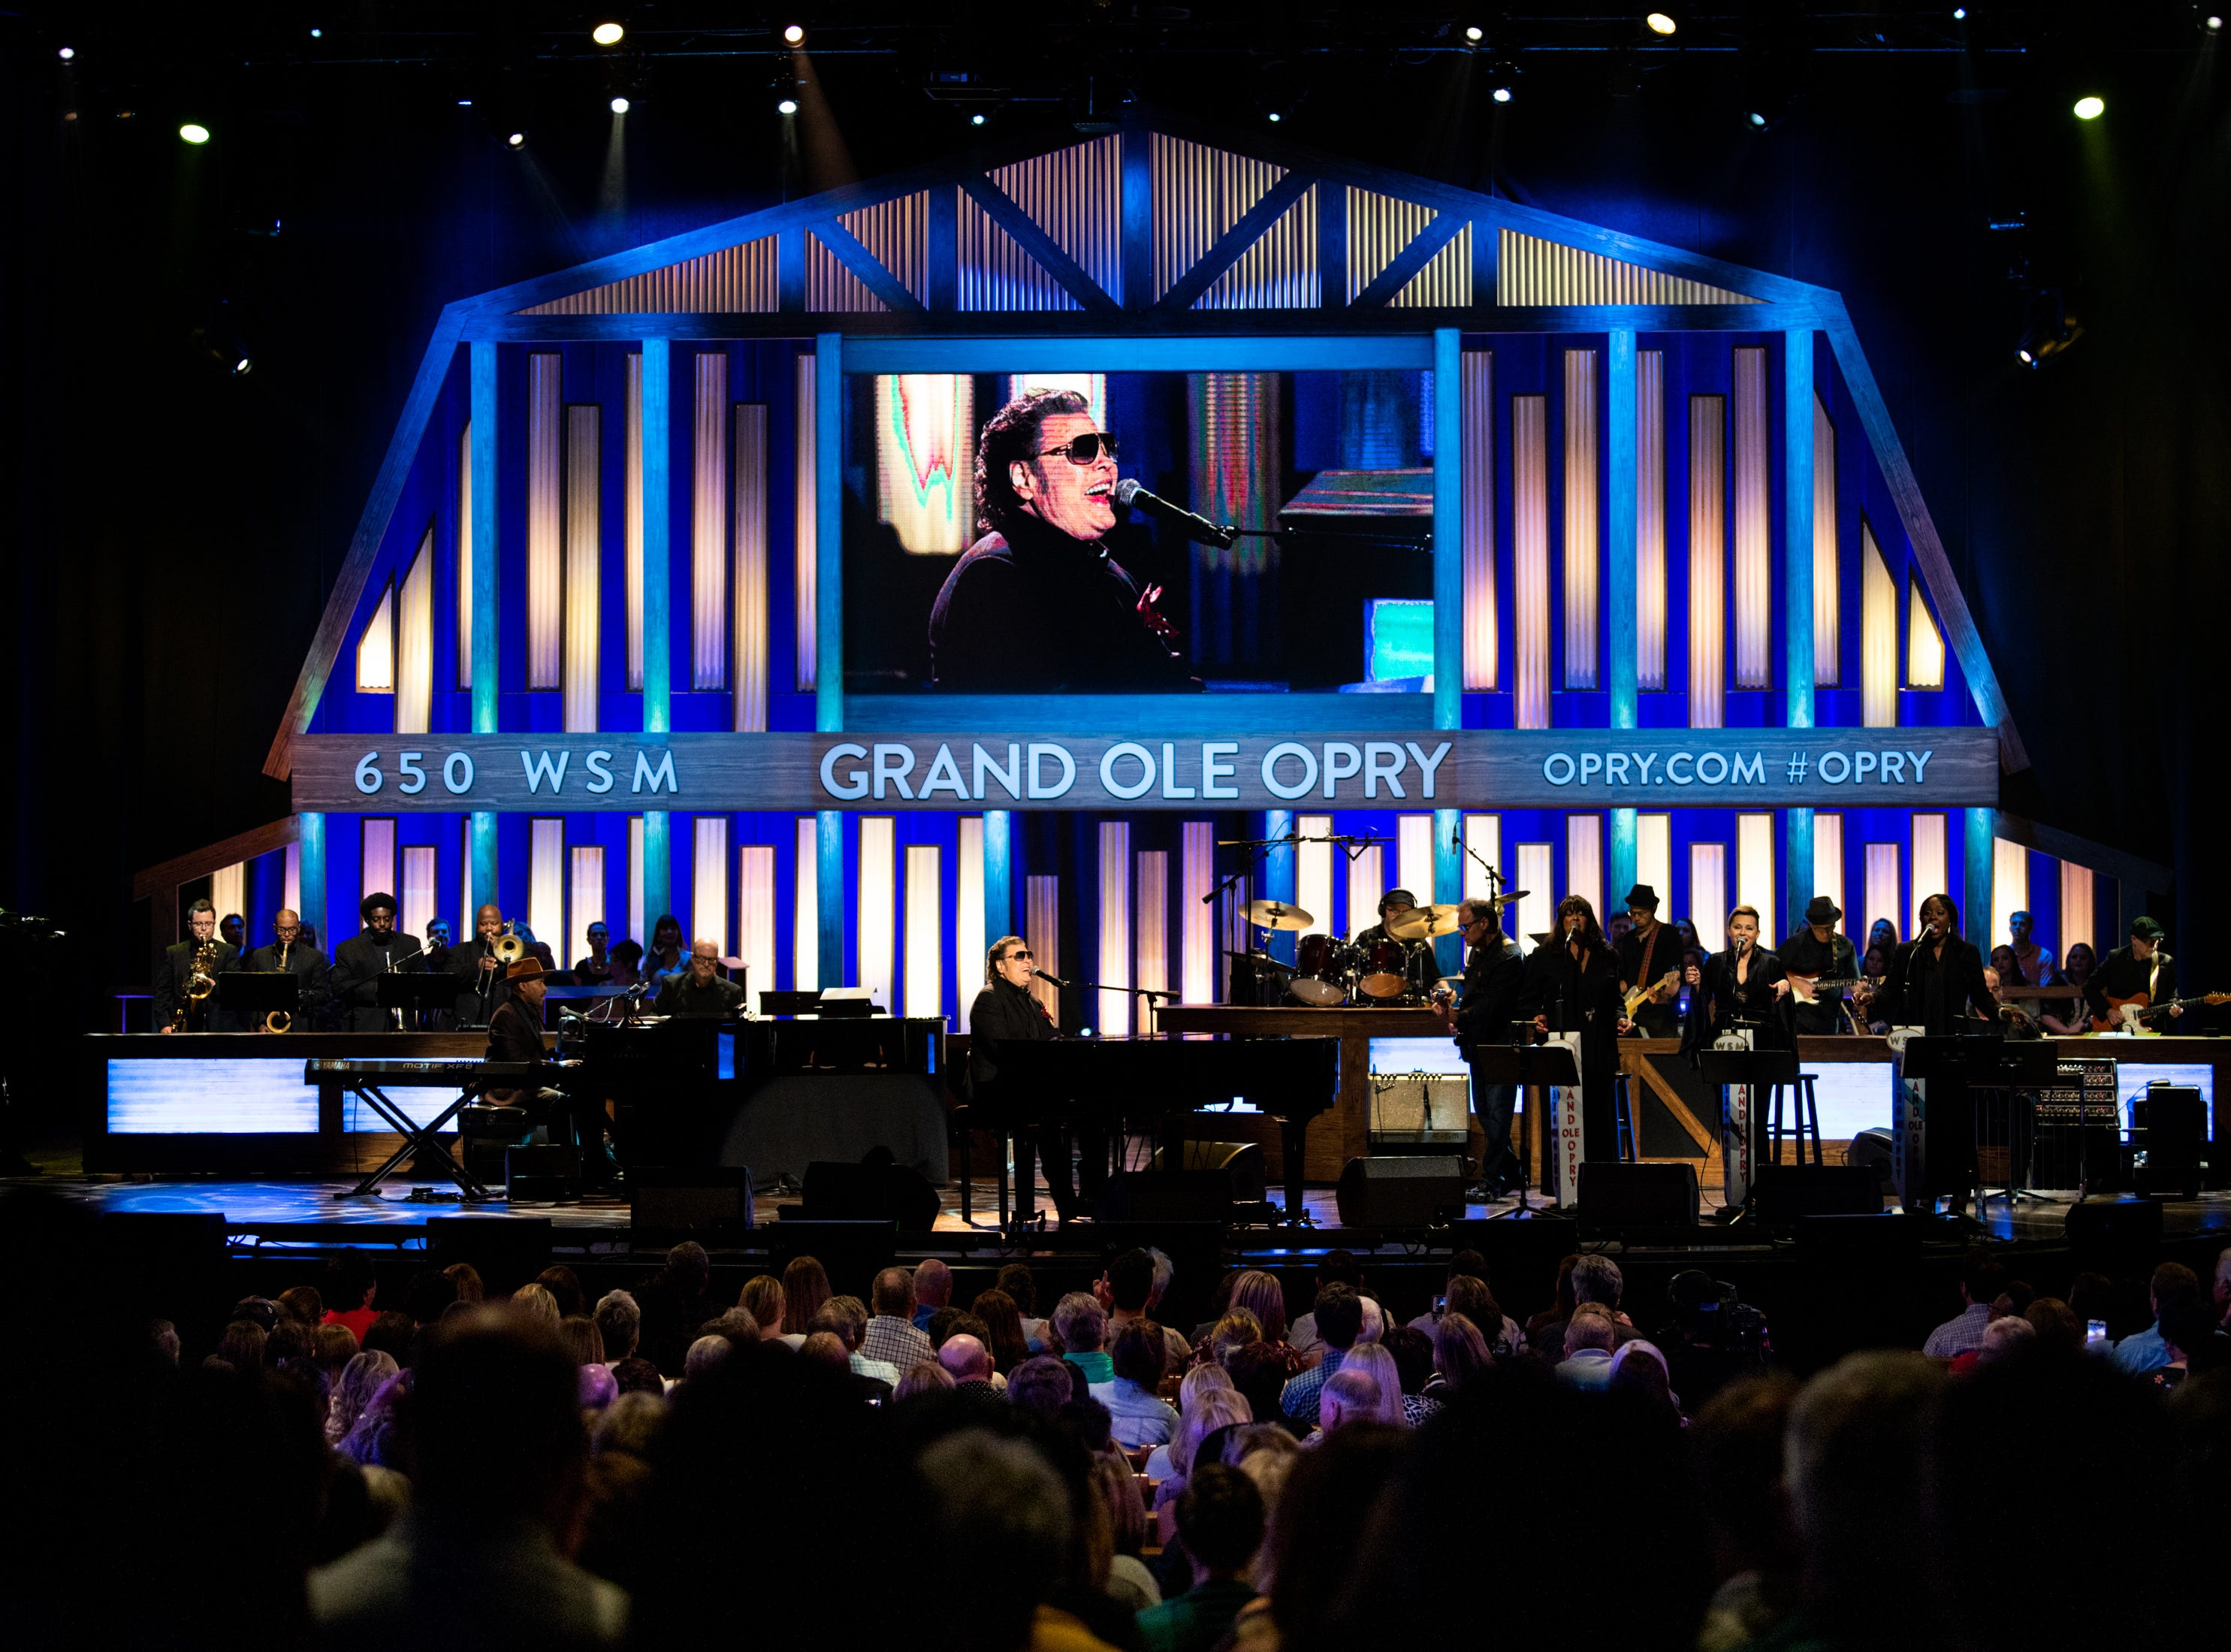 Ronnie Milsap performs during the An Opry Salute to Ray Charles concert at The Grand Ole Opry in Nashville, Tenn., Monday, Oct. 8, 2018.